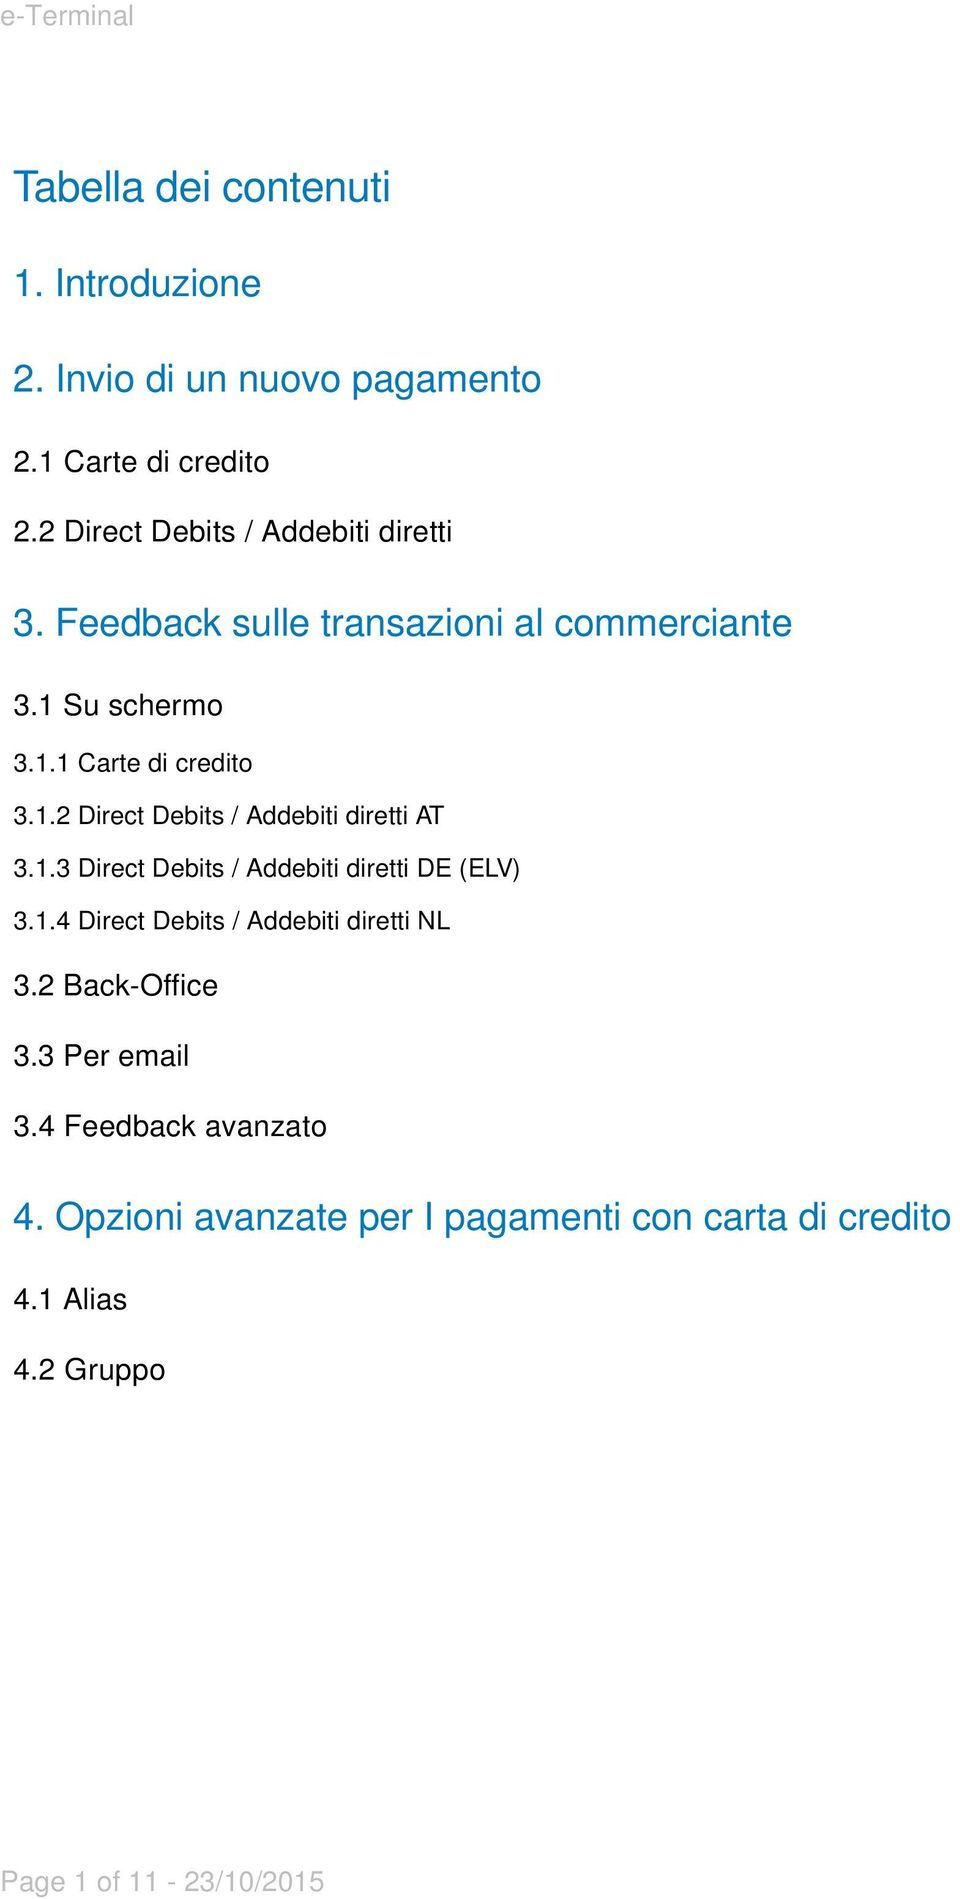 Su schermo 3.1.1 Carte di credito 3.1.2 Direct Debits / Addebiti diretti AT 3.1.3 Direct Debits / Addebiti diretti DE (ELV) 3.